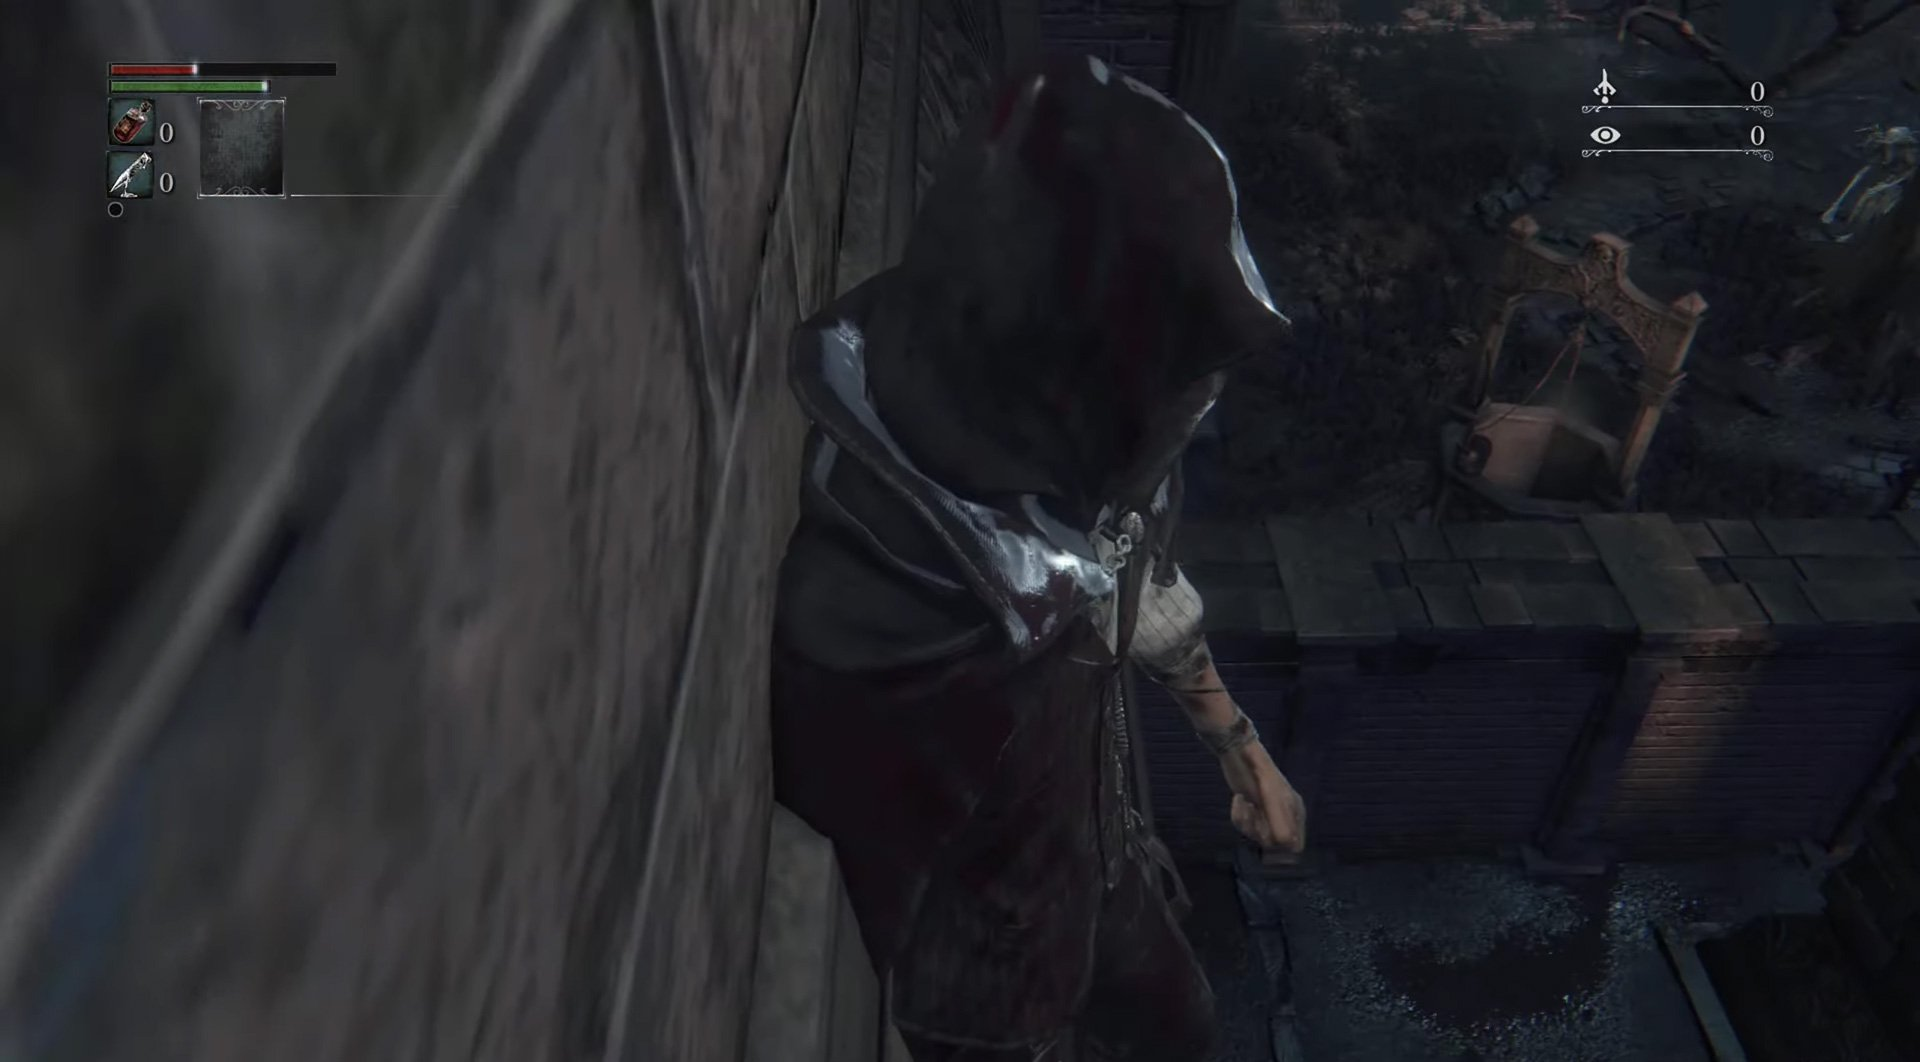 You can skip to the Forbidden Woods in Bloodborne again screenshot